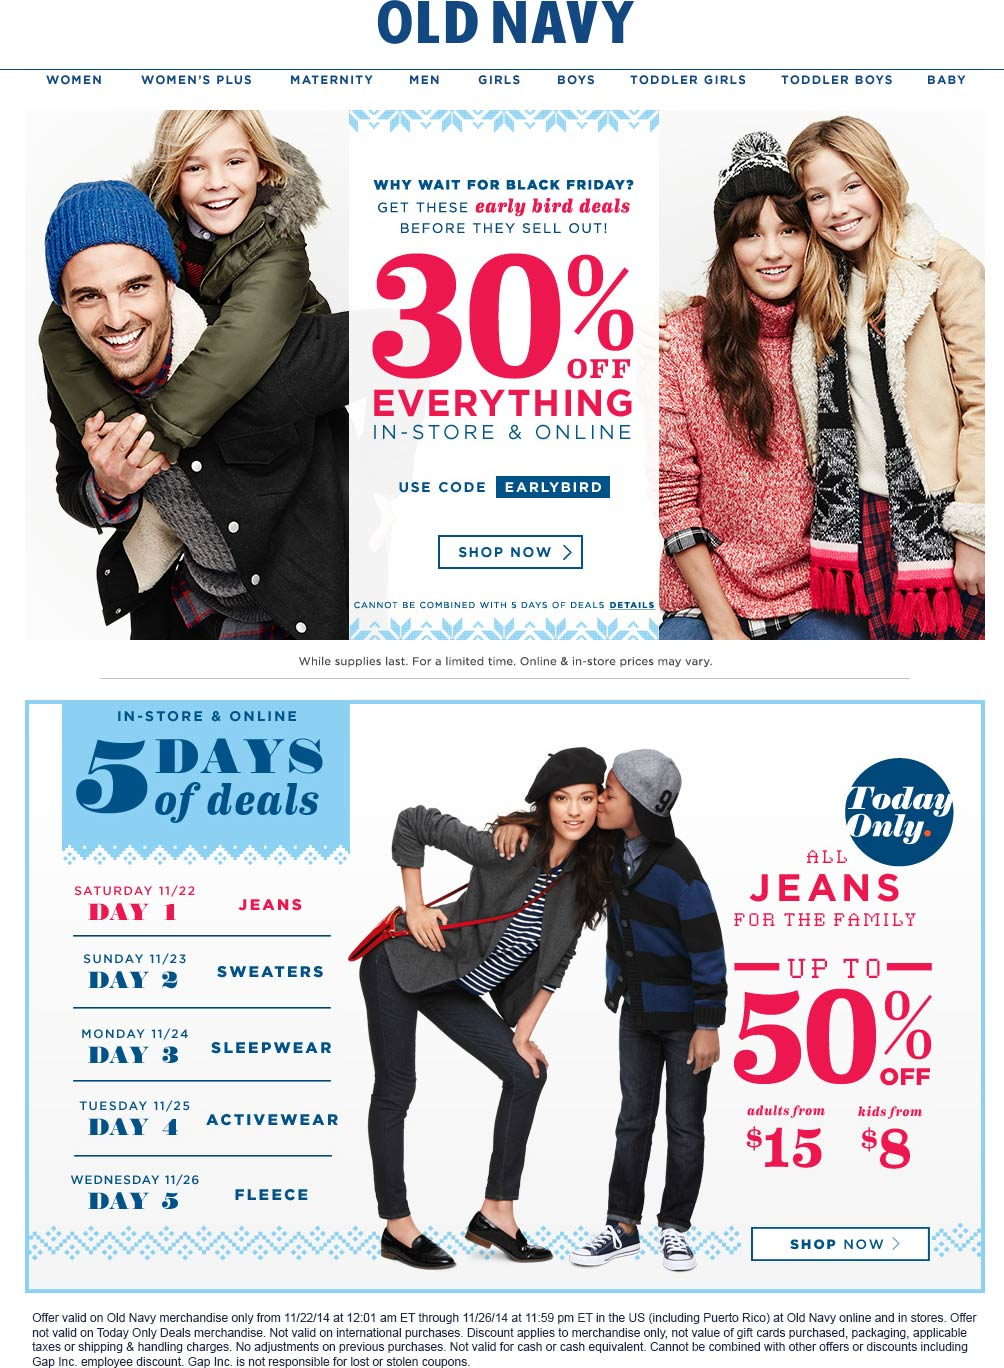 Old Navy Coupon March 2018 30% off everything at Old Navy, or online via promo code EARLYBIRD